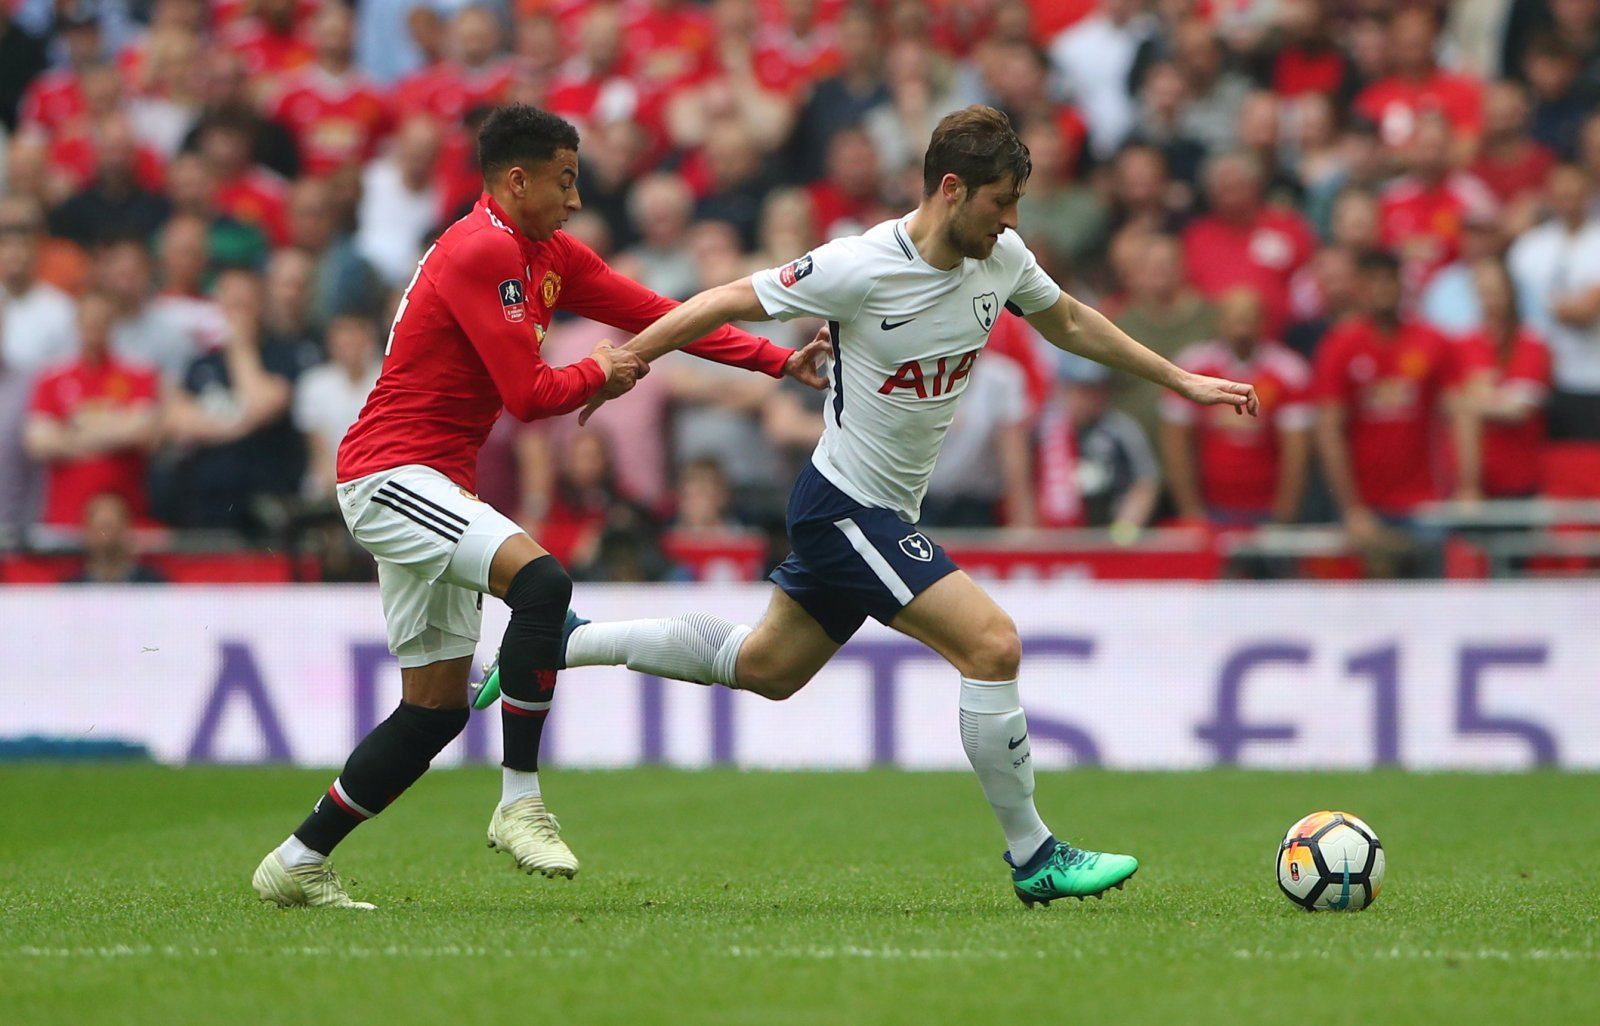 Tottenham fans were right to criticise Davies' performance against Watford